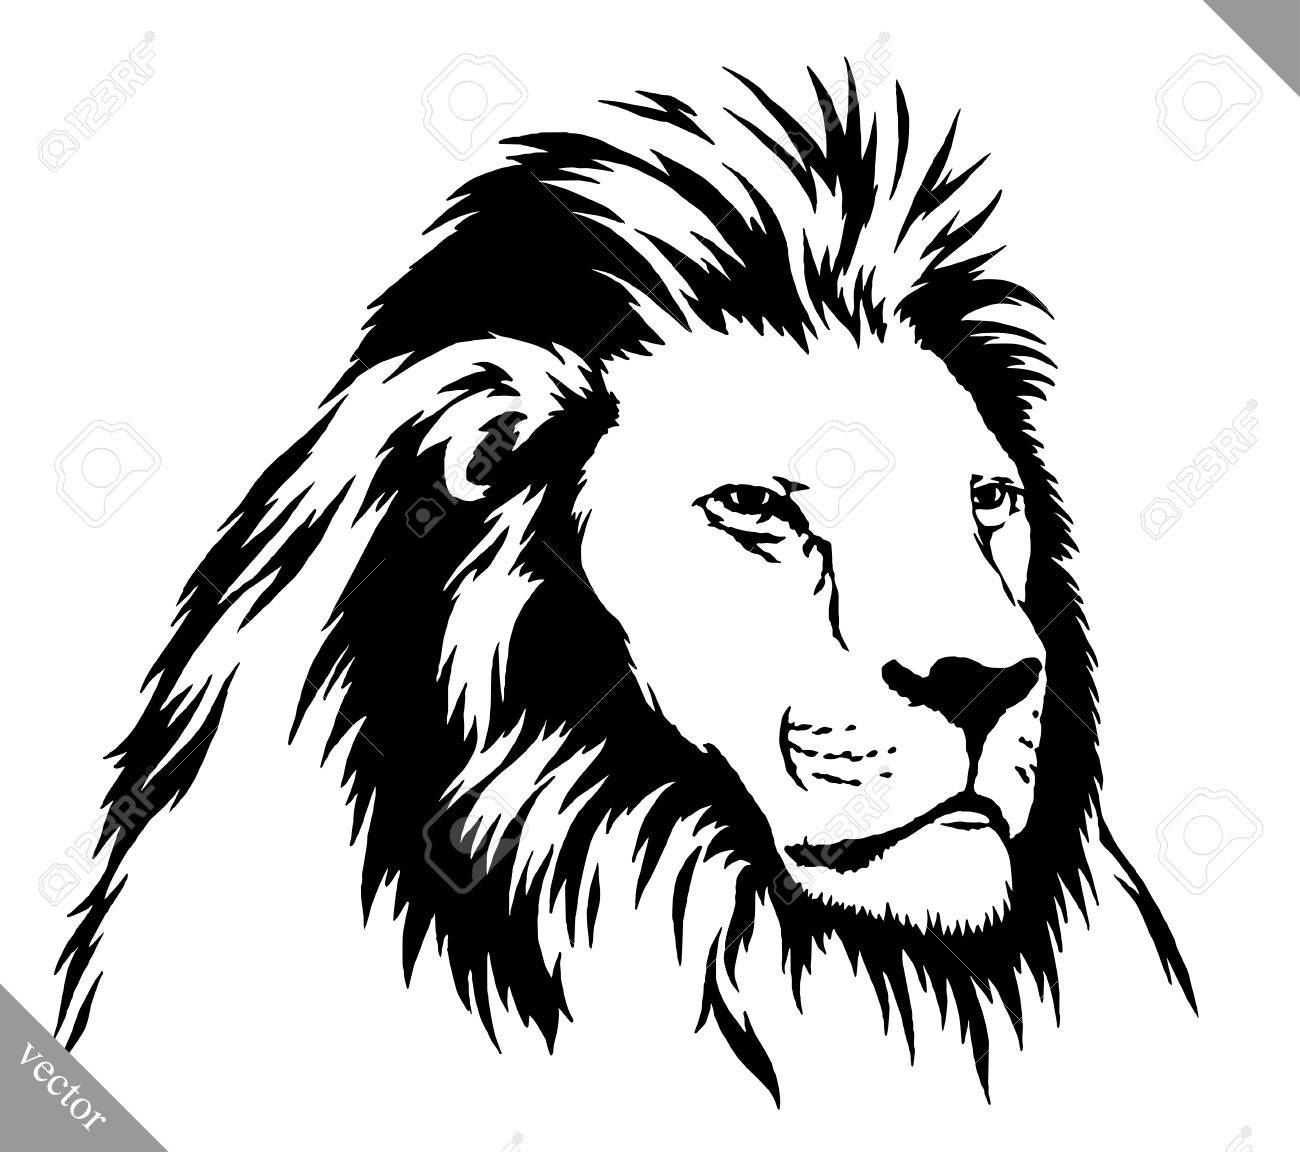 Black and white linear draw lion vector illustration stock vector 59716287